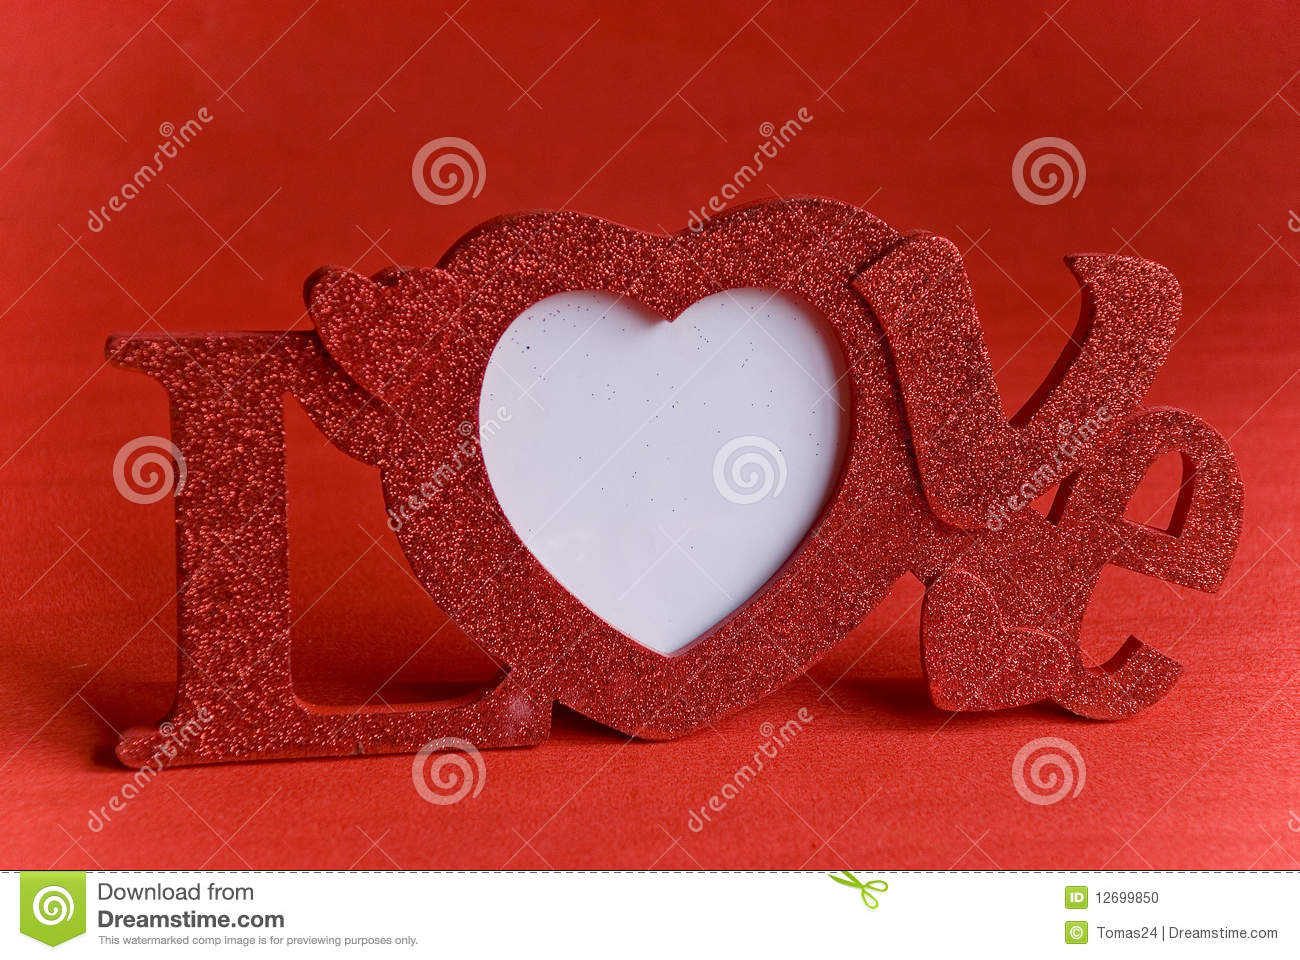 Love word frame stock photo. Image of feelings, passion - 12699850